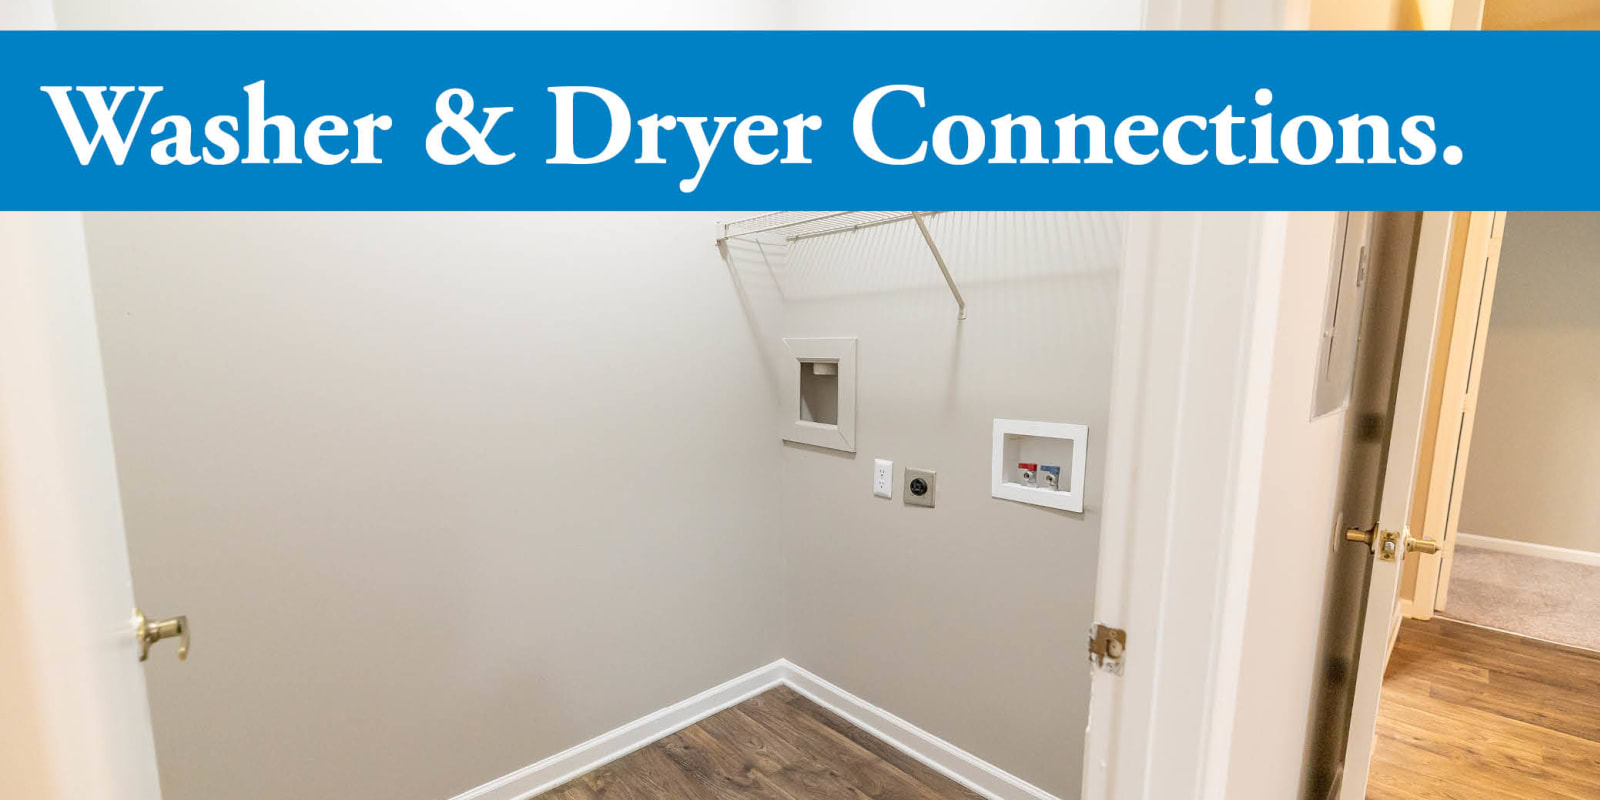 Washer/Dryer Connection at Clemmons Station Apartment Homes in Clemmons, North Carolina